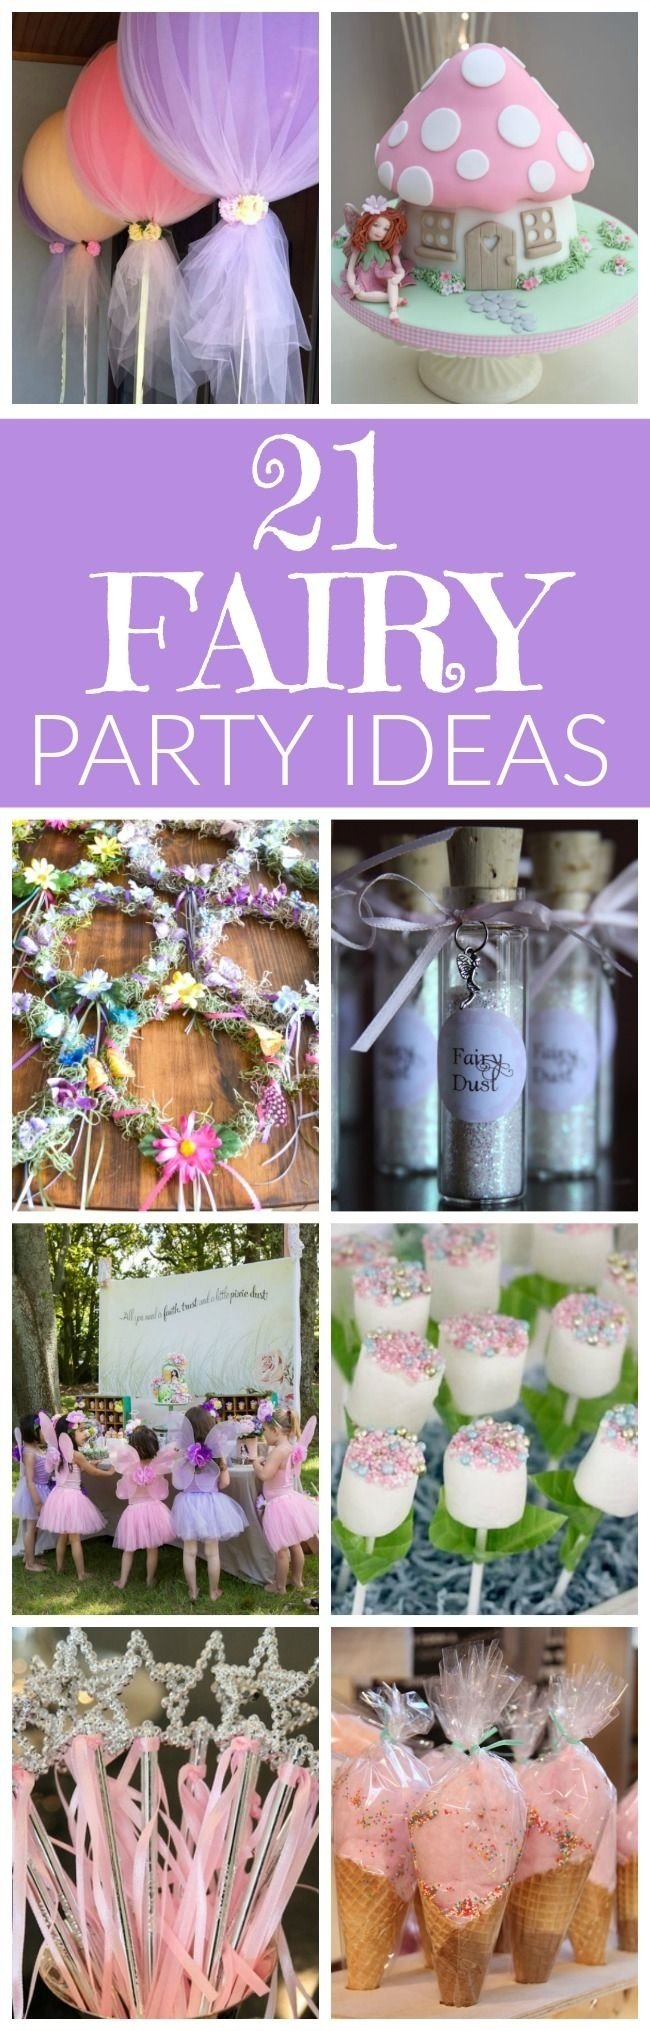 10 Attractive Girls 5Th Birthday Party Ideas 5th birthday party ideas girl tags 5th birthday party ideas girl 2020